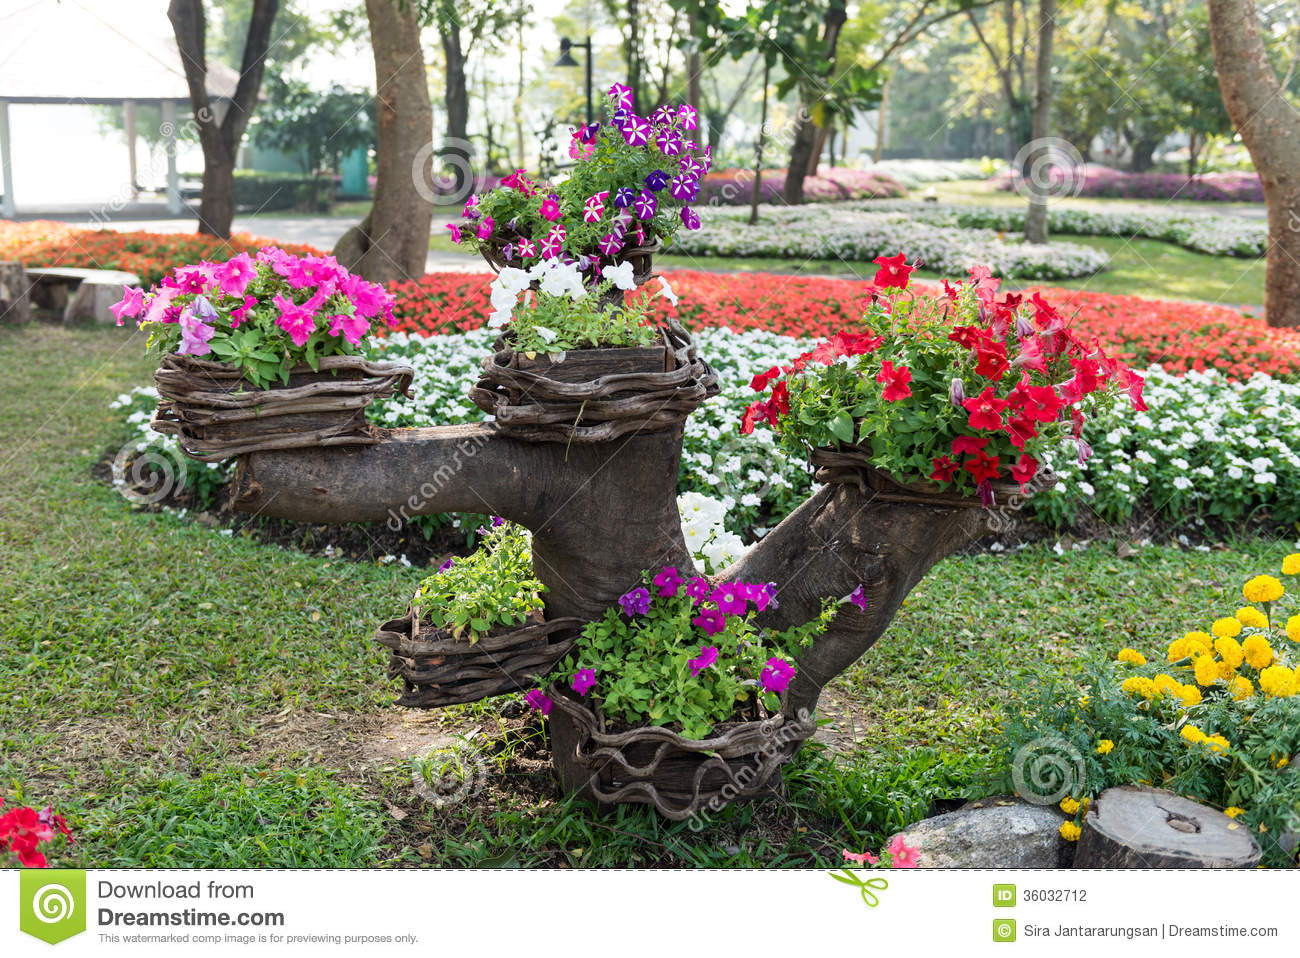 Colorful Flower Garden Background Stock Photo Image - Colorful flower garden background